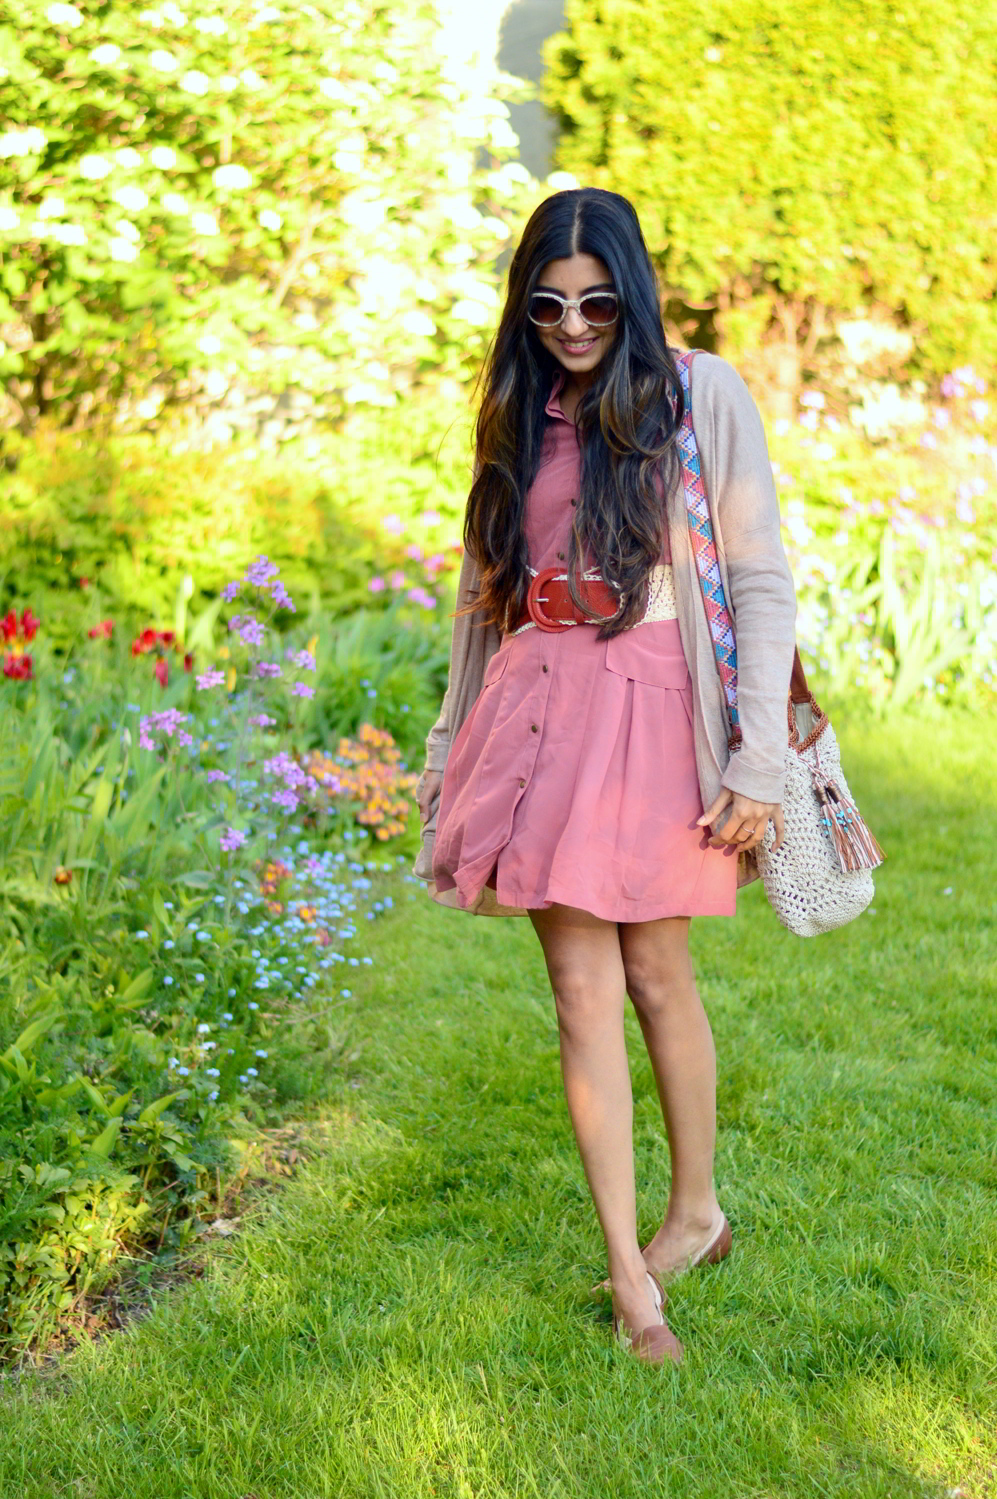 pink-shirtdress-crochet-bag-neutral-cardigan-blogger-outfit 3